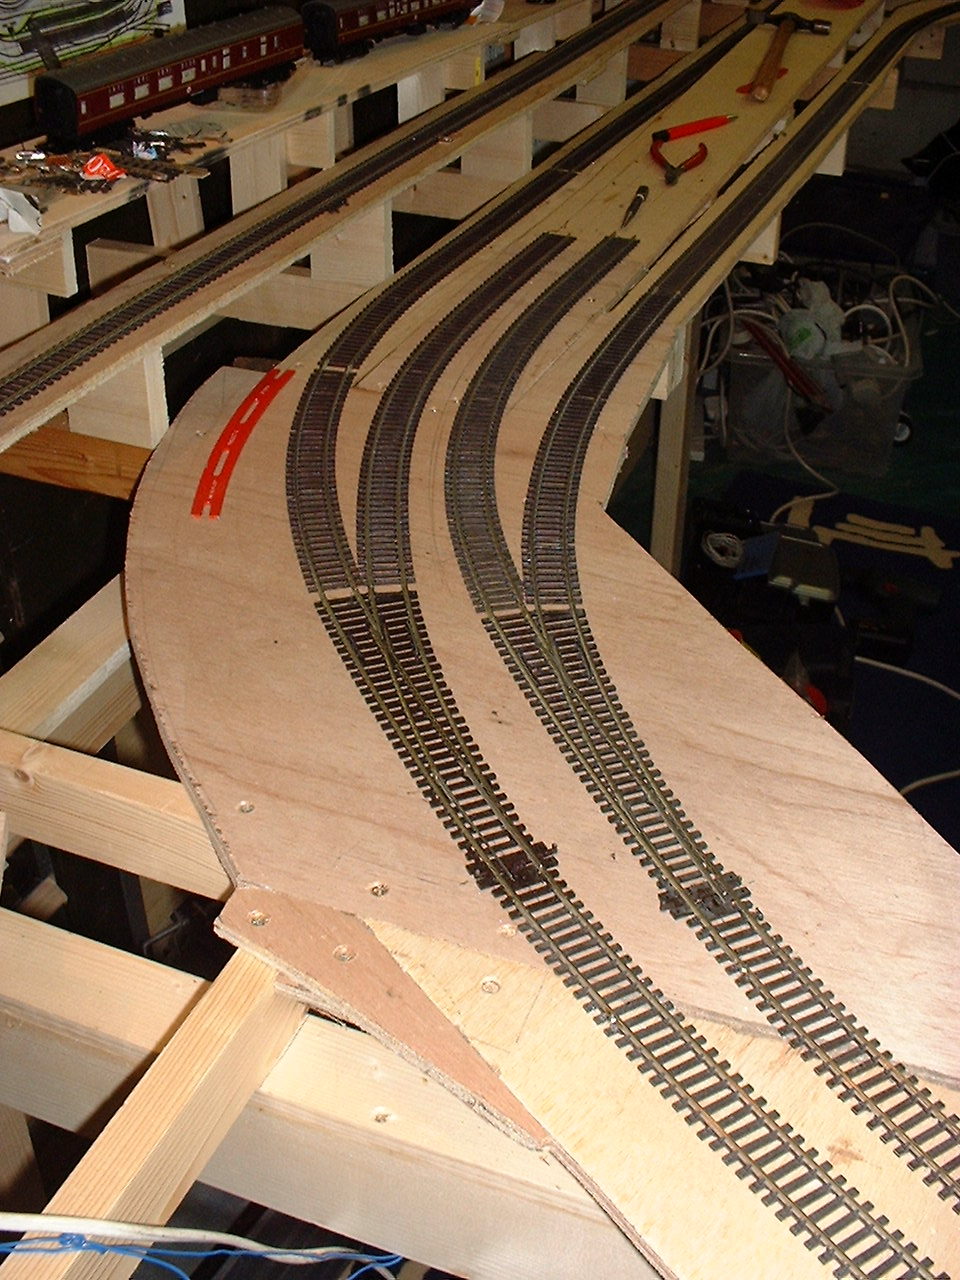 L timbers with risers to support the track baseboard